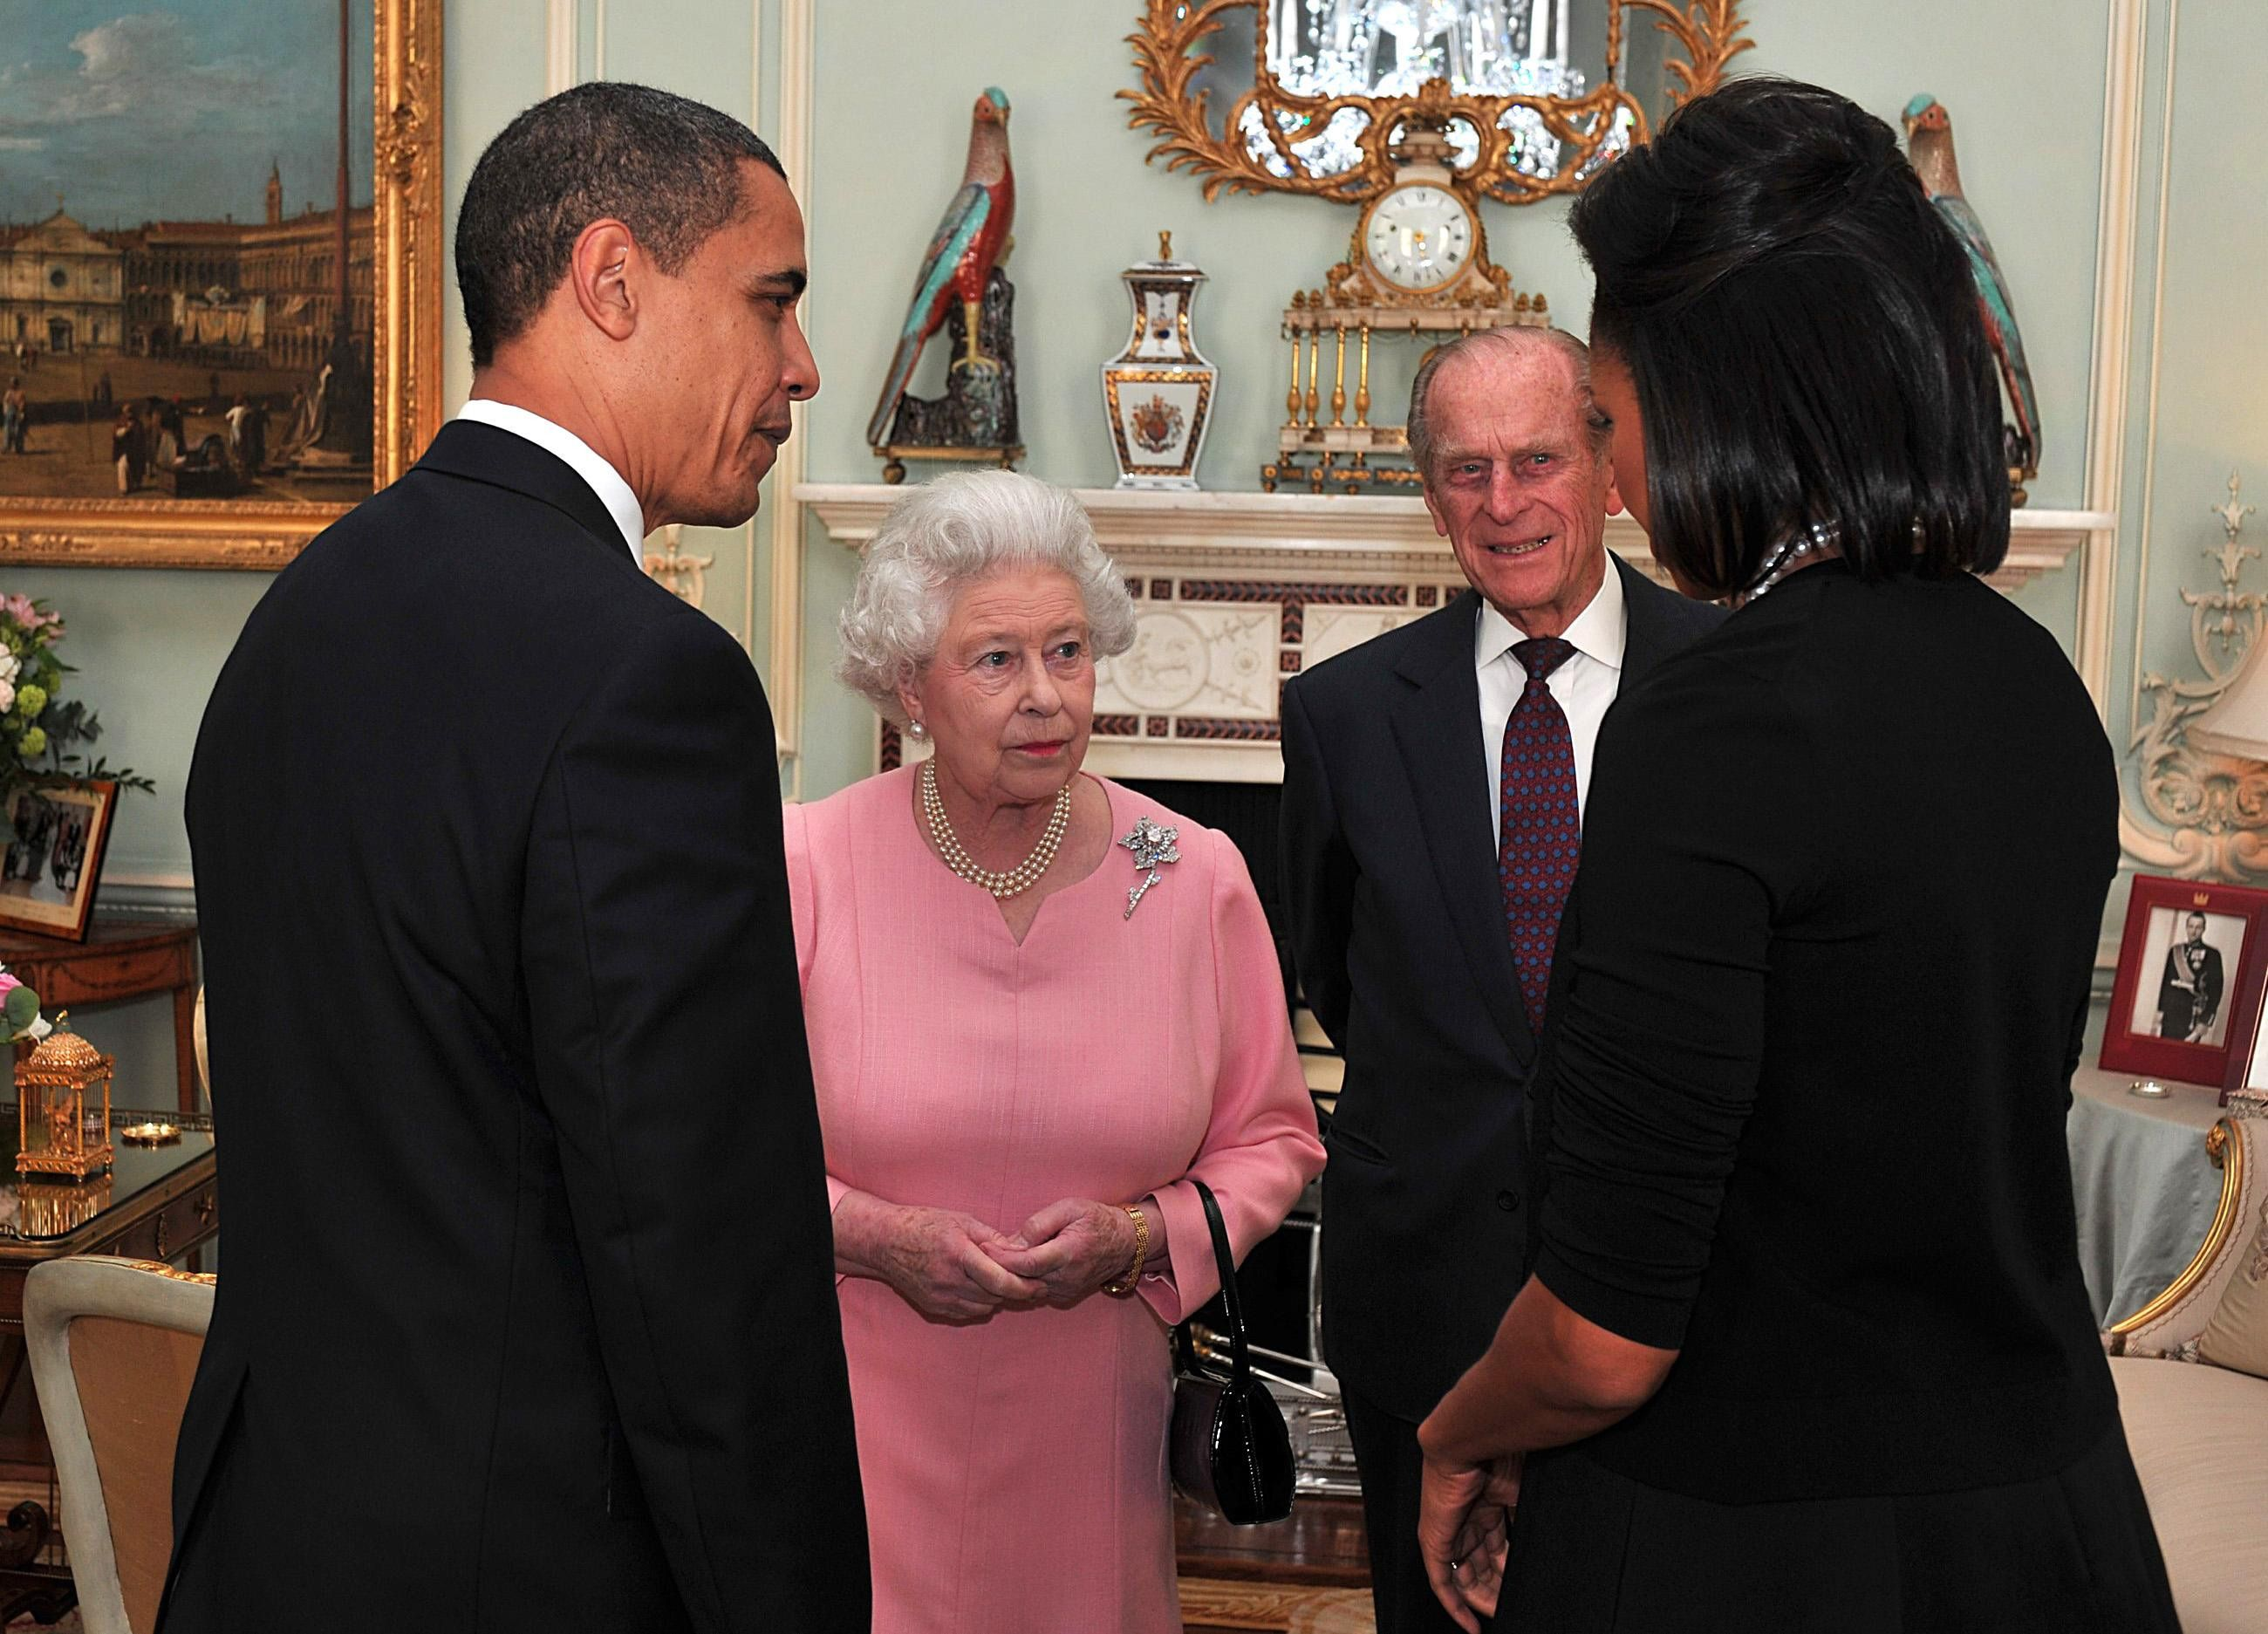 Queen Elizabeth, Barack Obama, Prince Philip, Michelle Obama